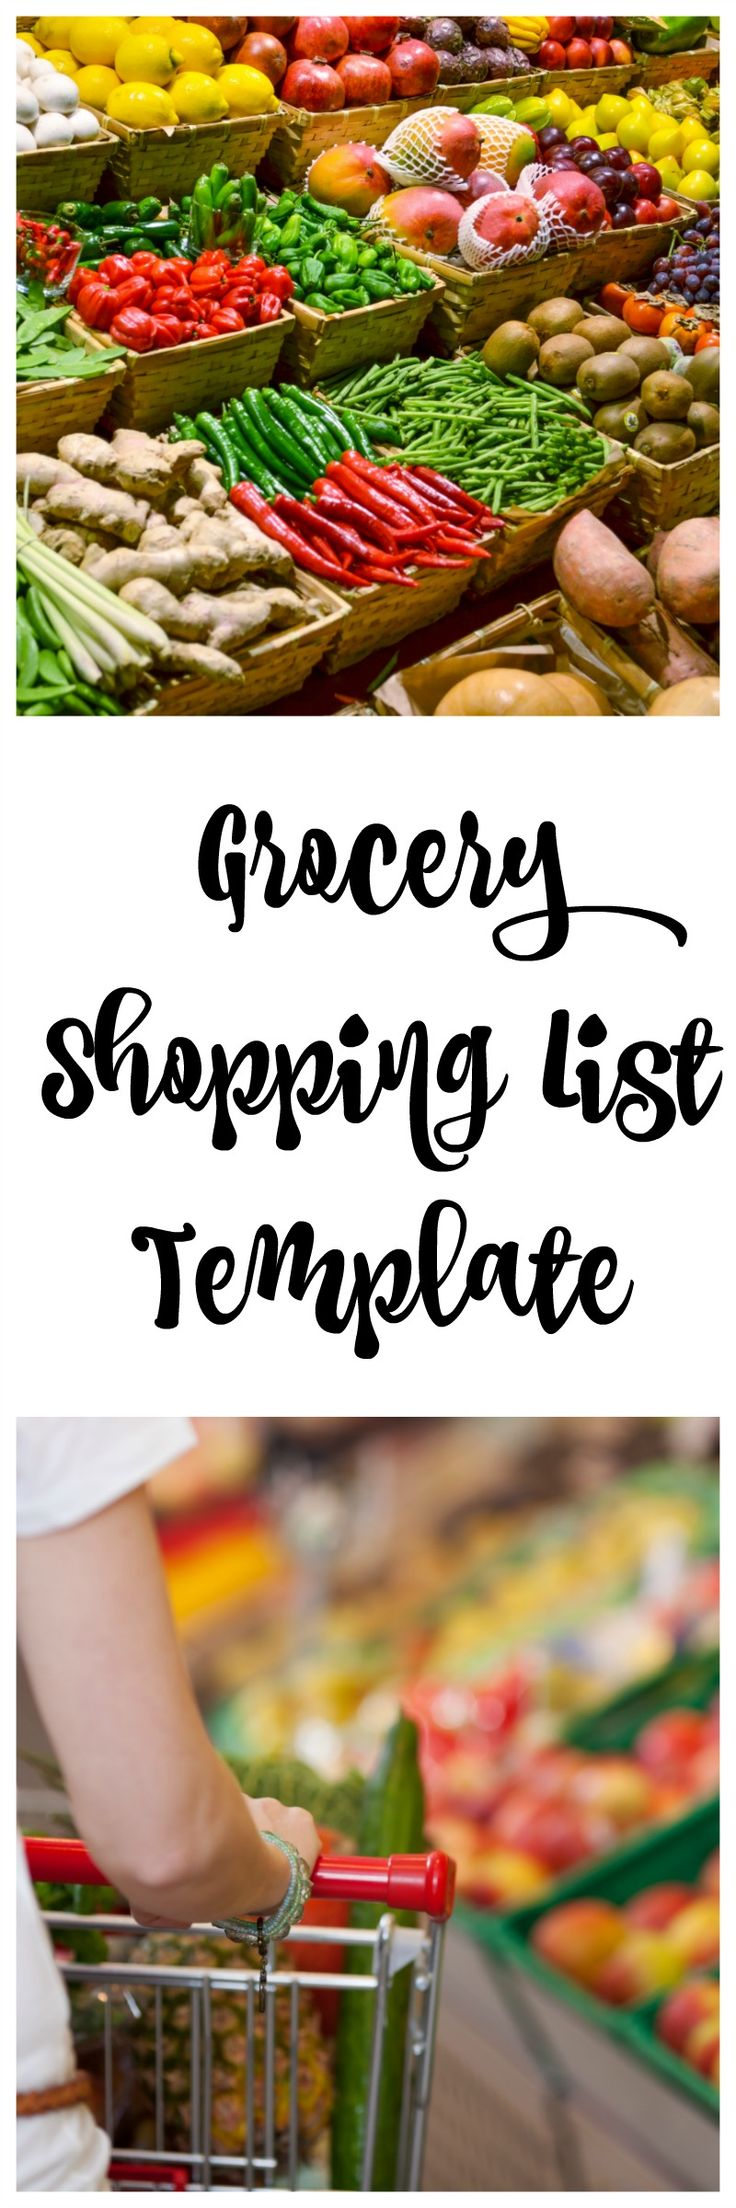 This printable Grocery Shopping List Template is easy to use, keeps you organized and helps you save money at the grocery store!